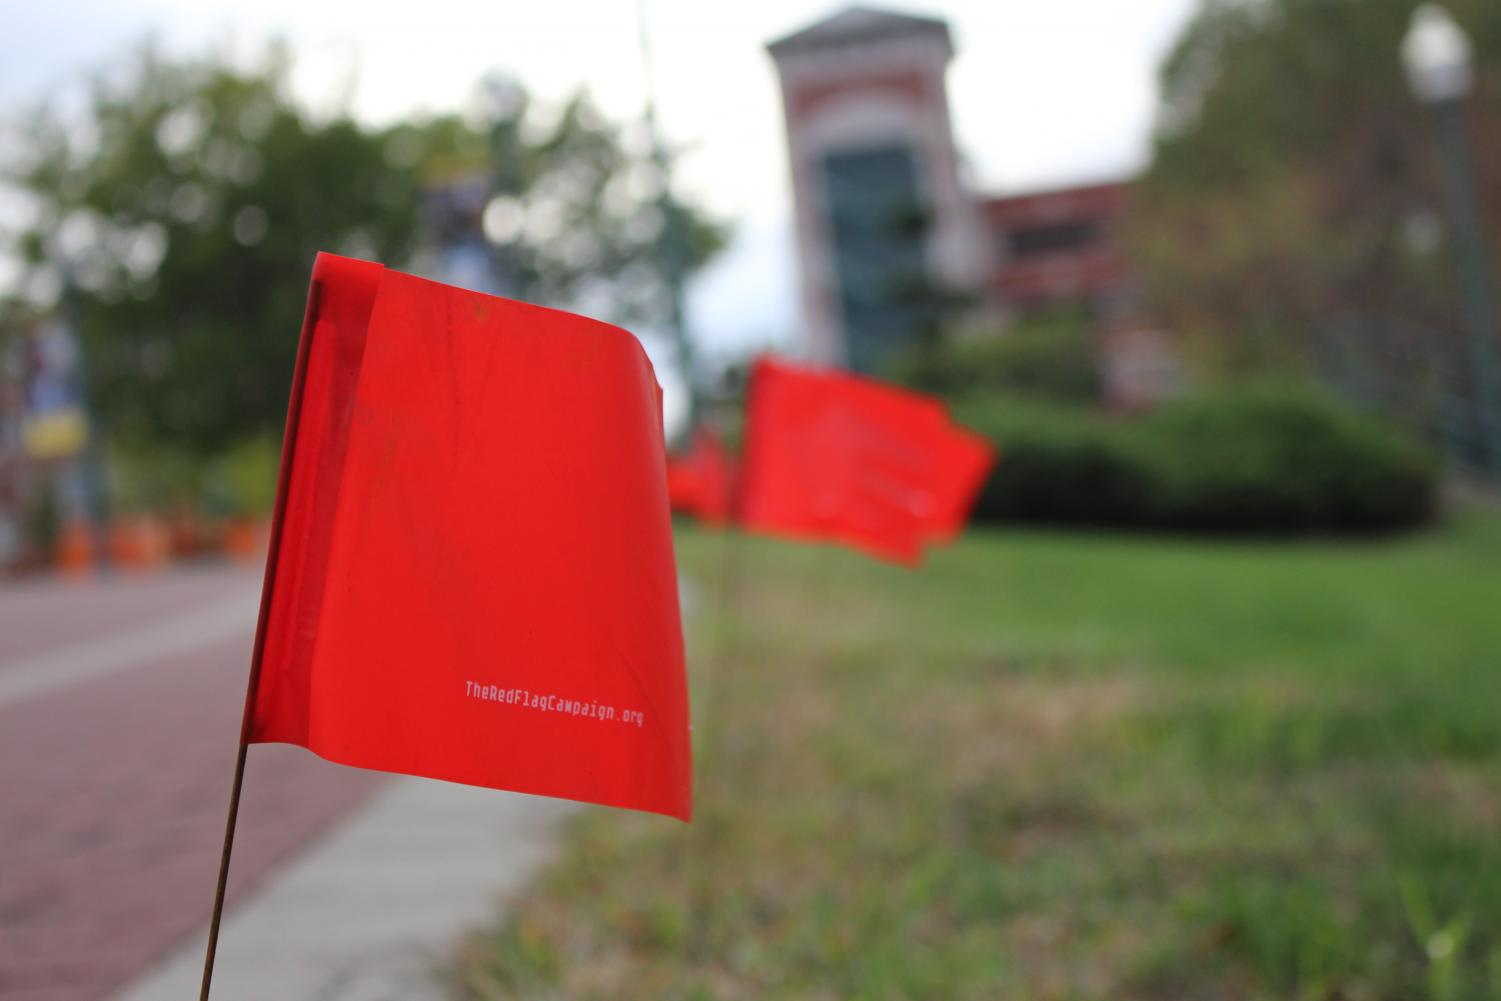 The red flags are meant to raise awareness to dating violence and prevention.